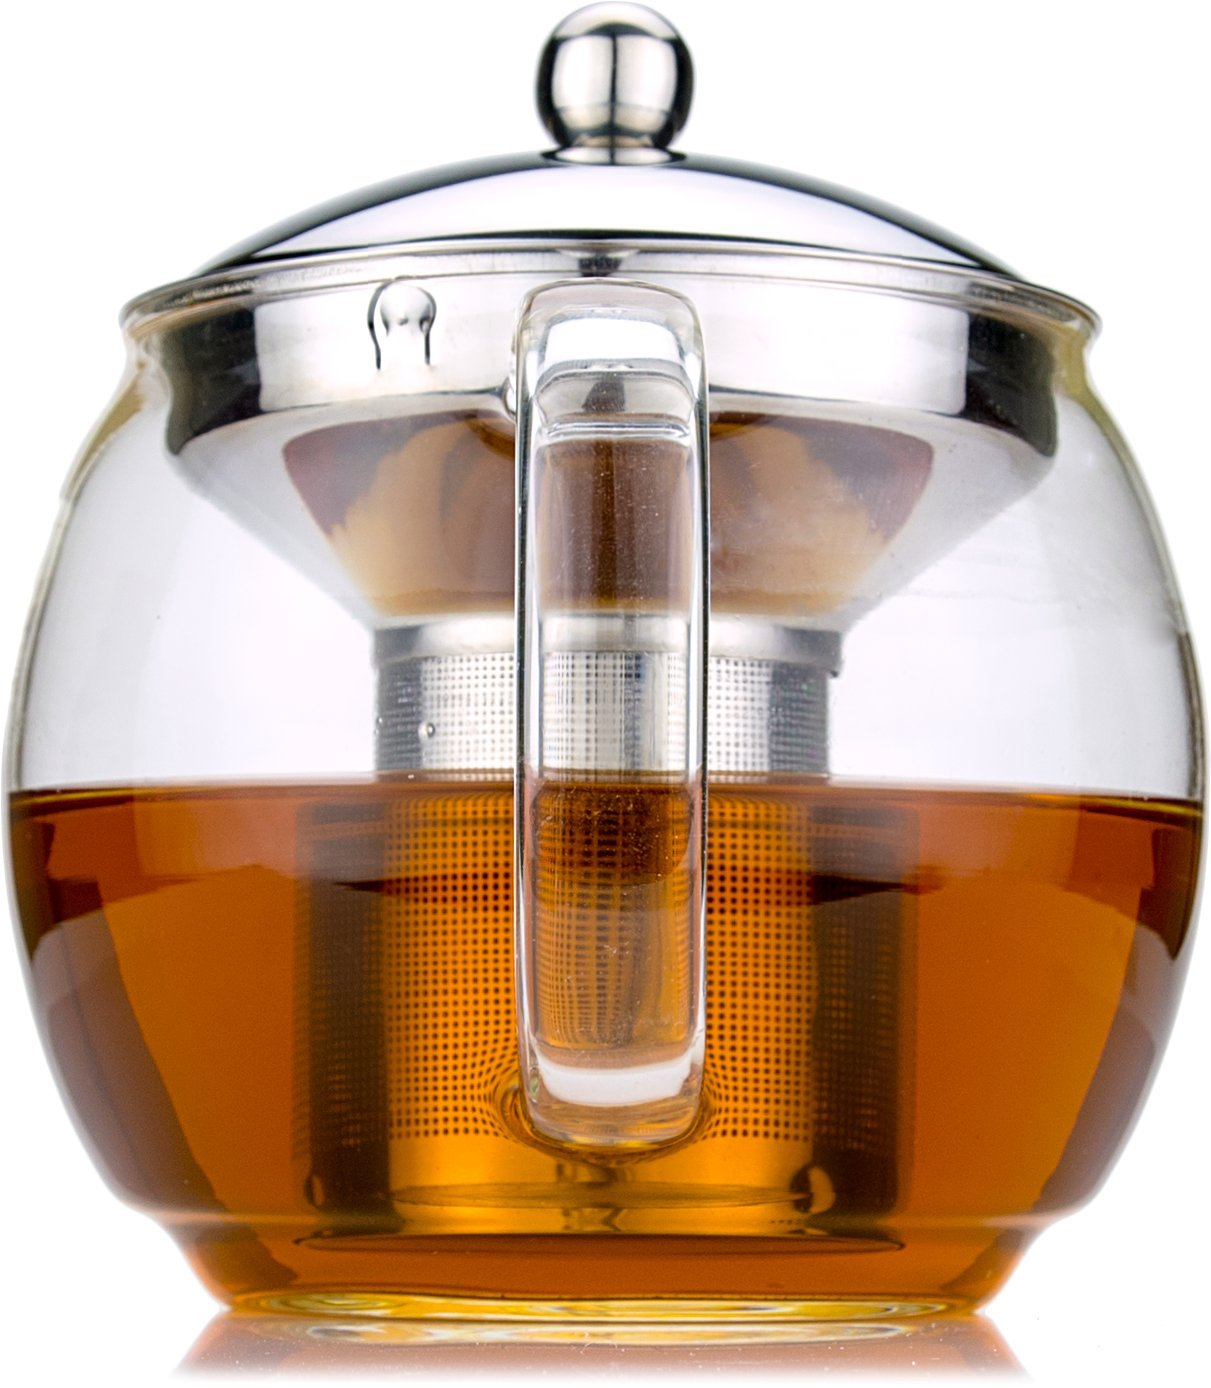 Glass Teapot with Infuser for Blooming and Loose Leaf Tea Pot by Cozyna | Holds 5-6 Cups | Includes Recipe Book by Cozyna (Image #2)